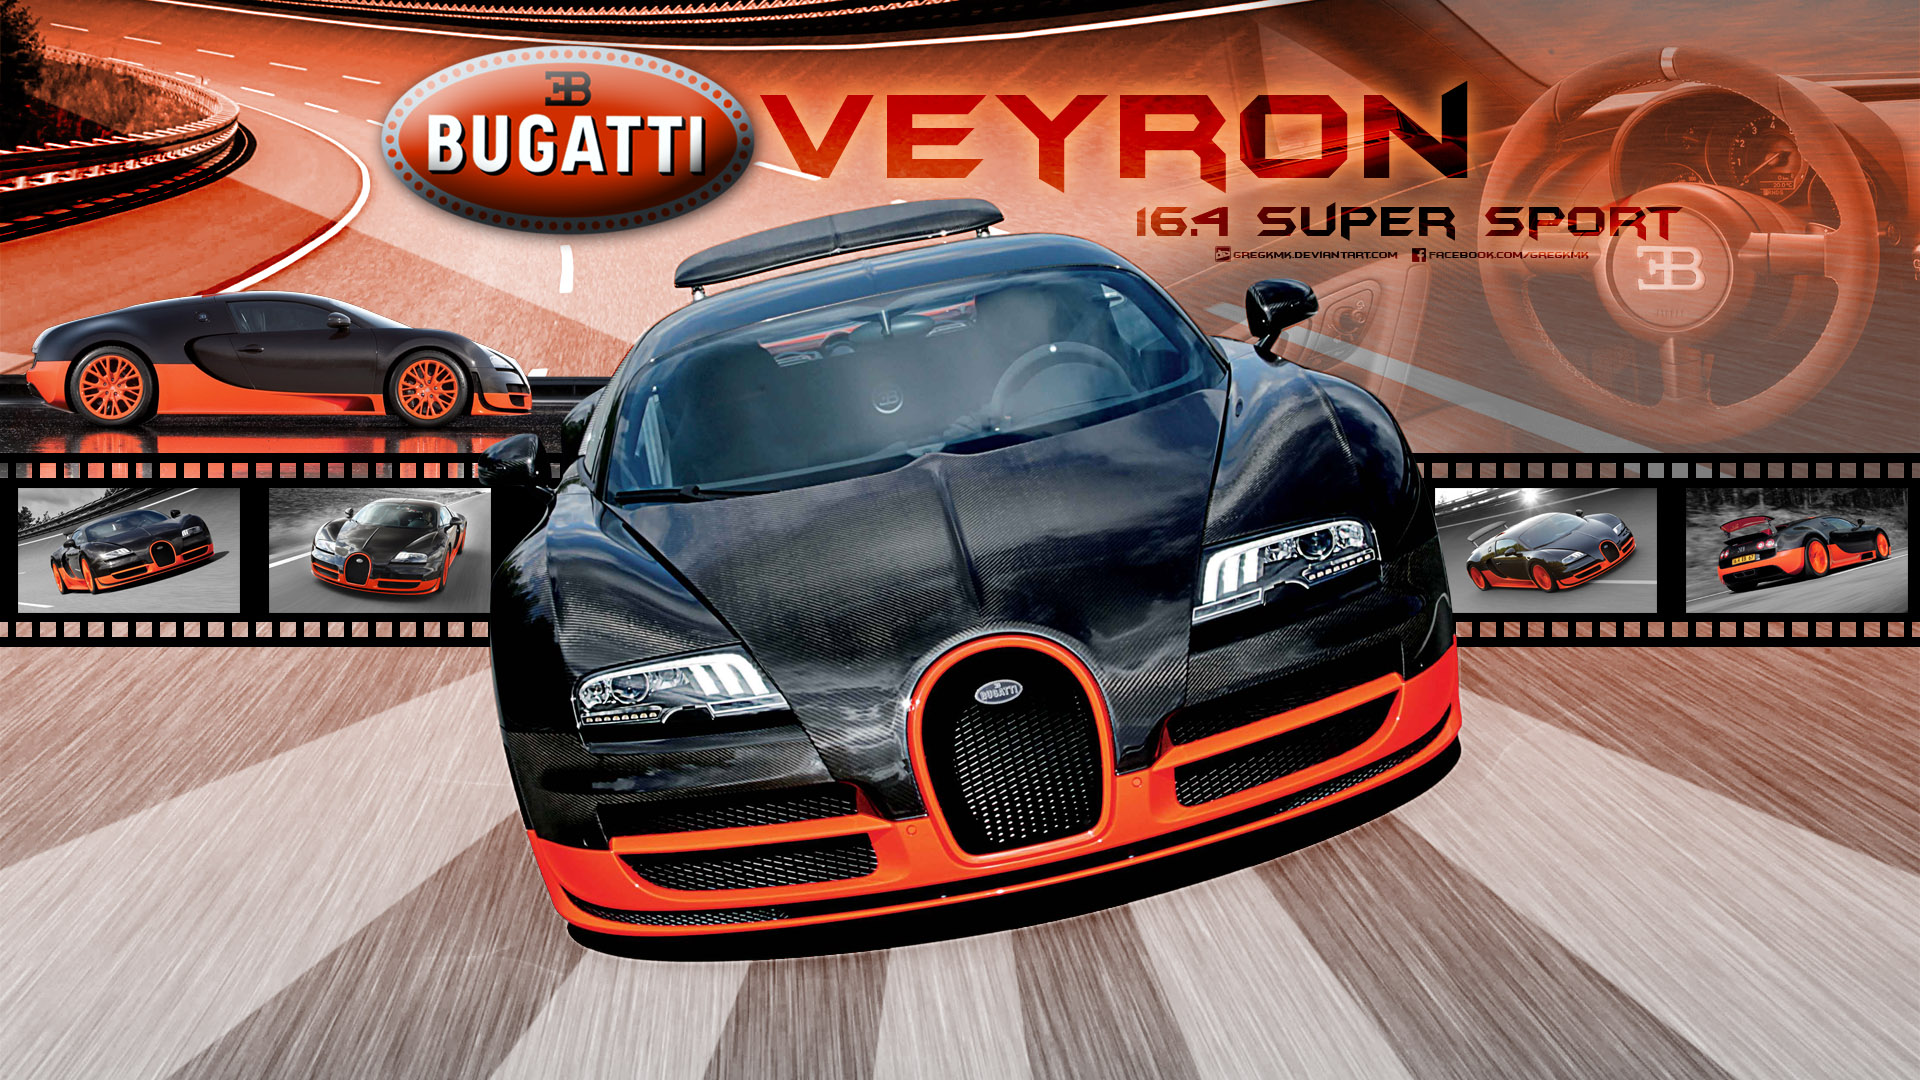 Bugatti Veyron Super Sport Wallpaper 1920x1080: Bugatti_Veyron_Super_Sport HD Wallpaper